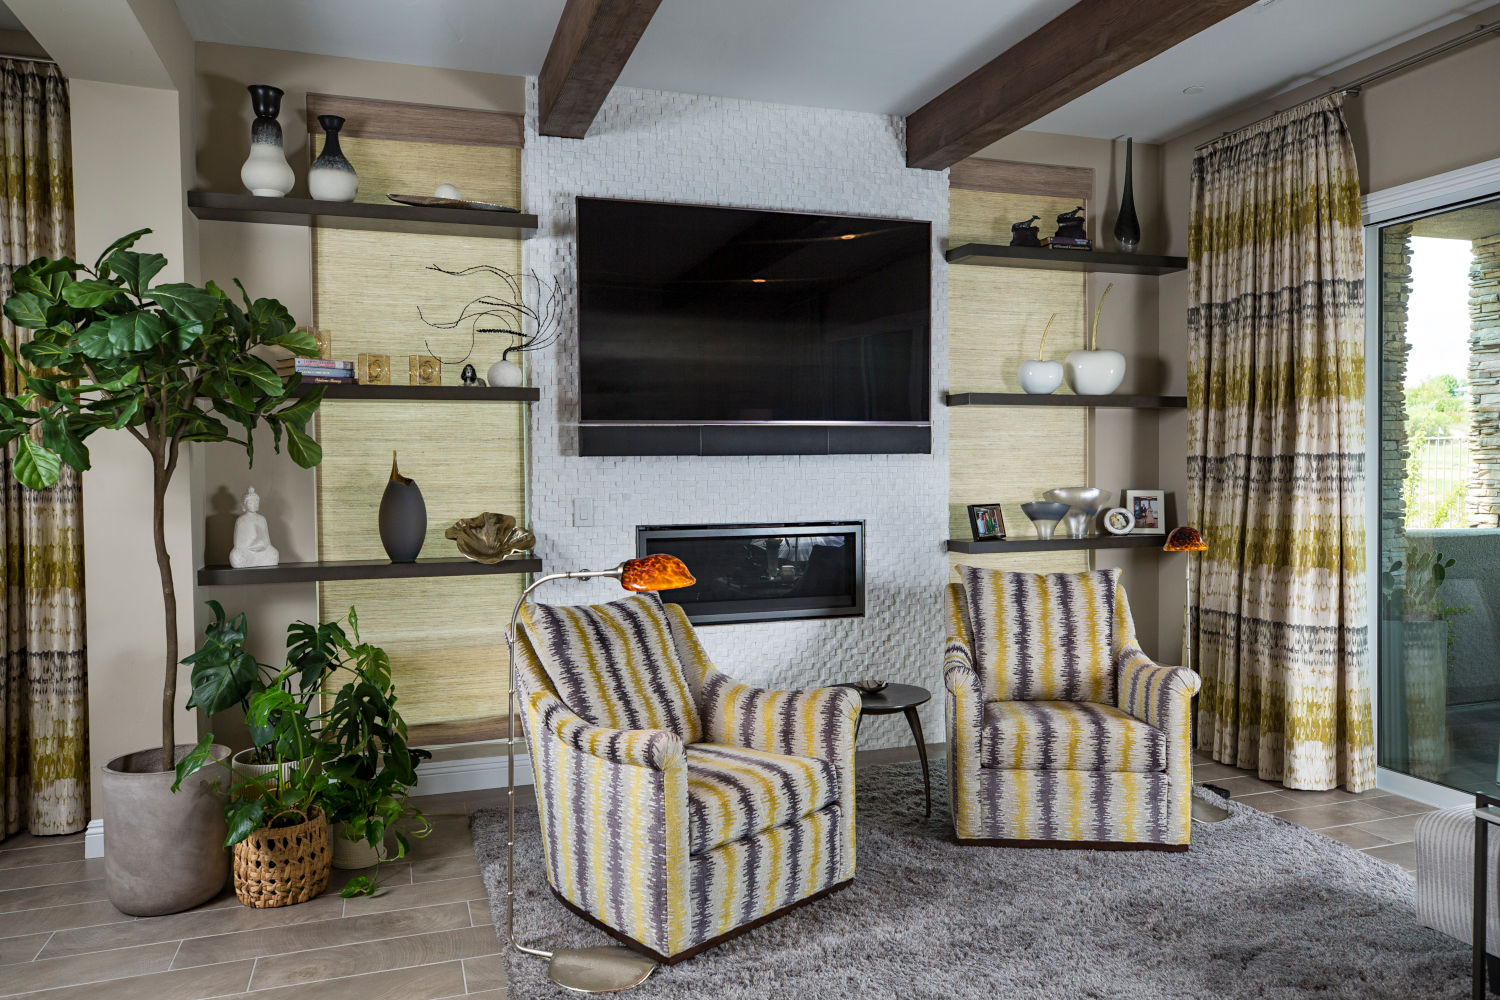 Condo remodel with yellow and black striped chairs.